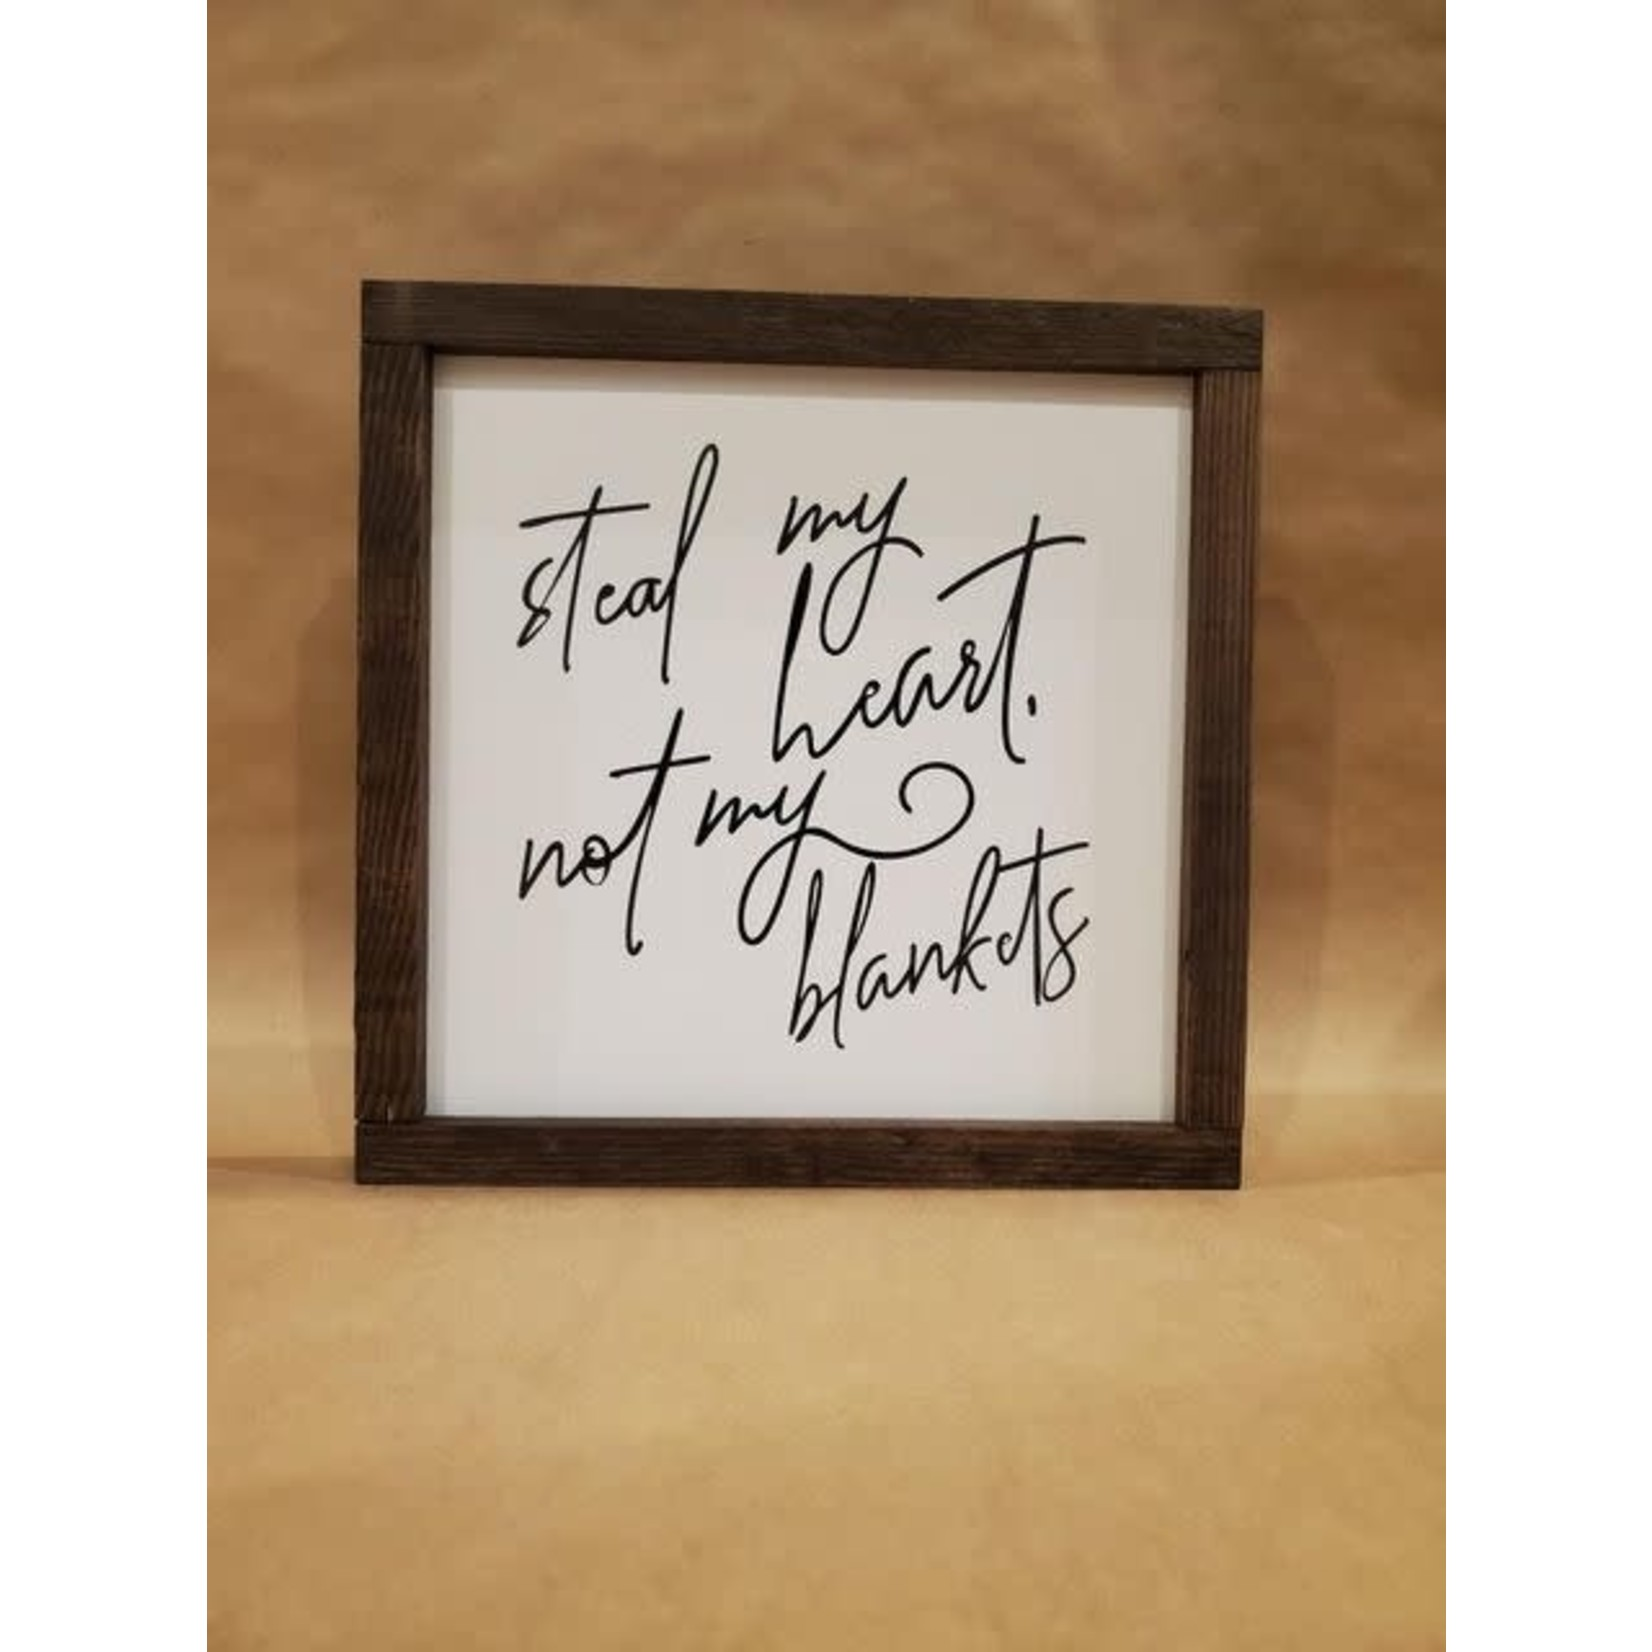 Favourite Things wood Steal my heart, not my blankets 10x10 framed sign